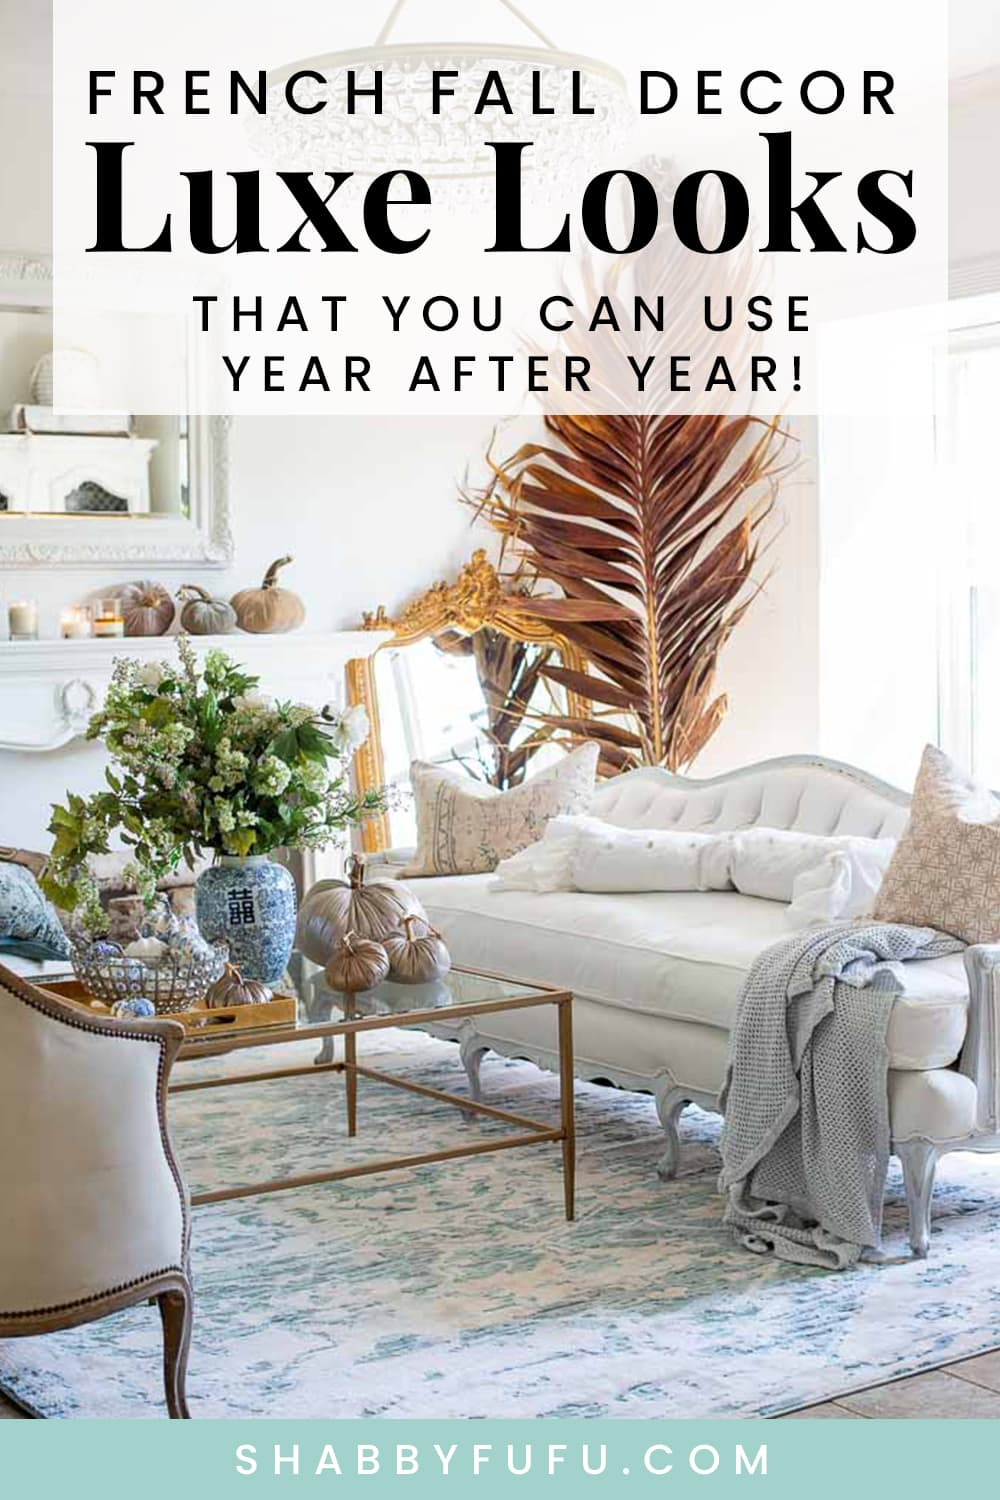 French Fall Decor In The Living Room